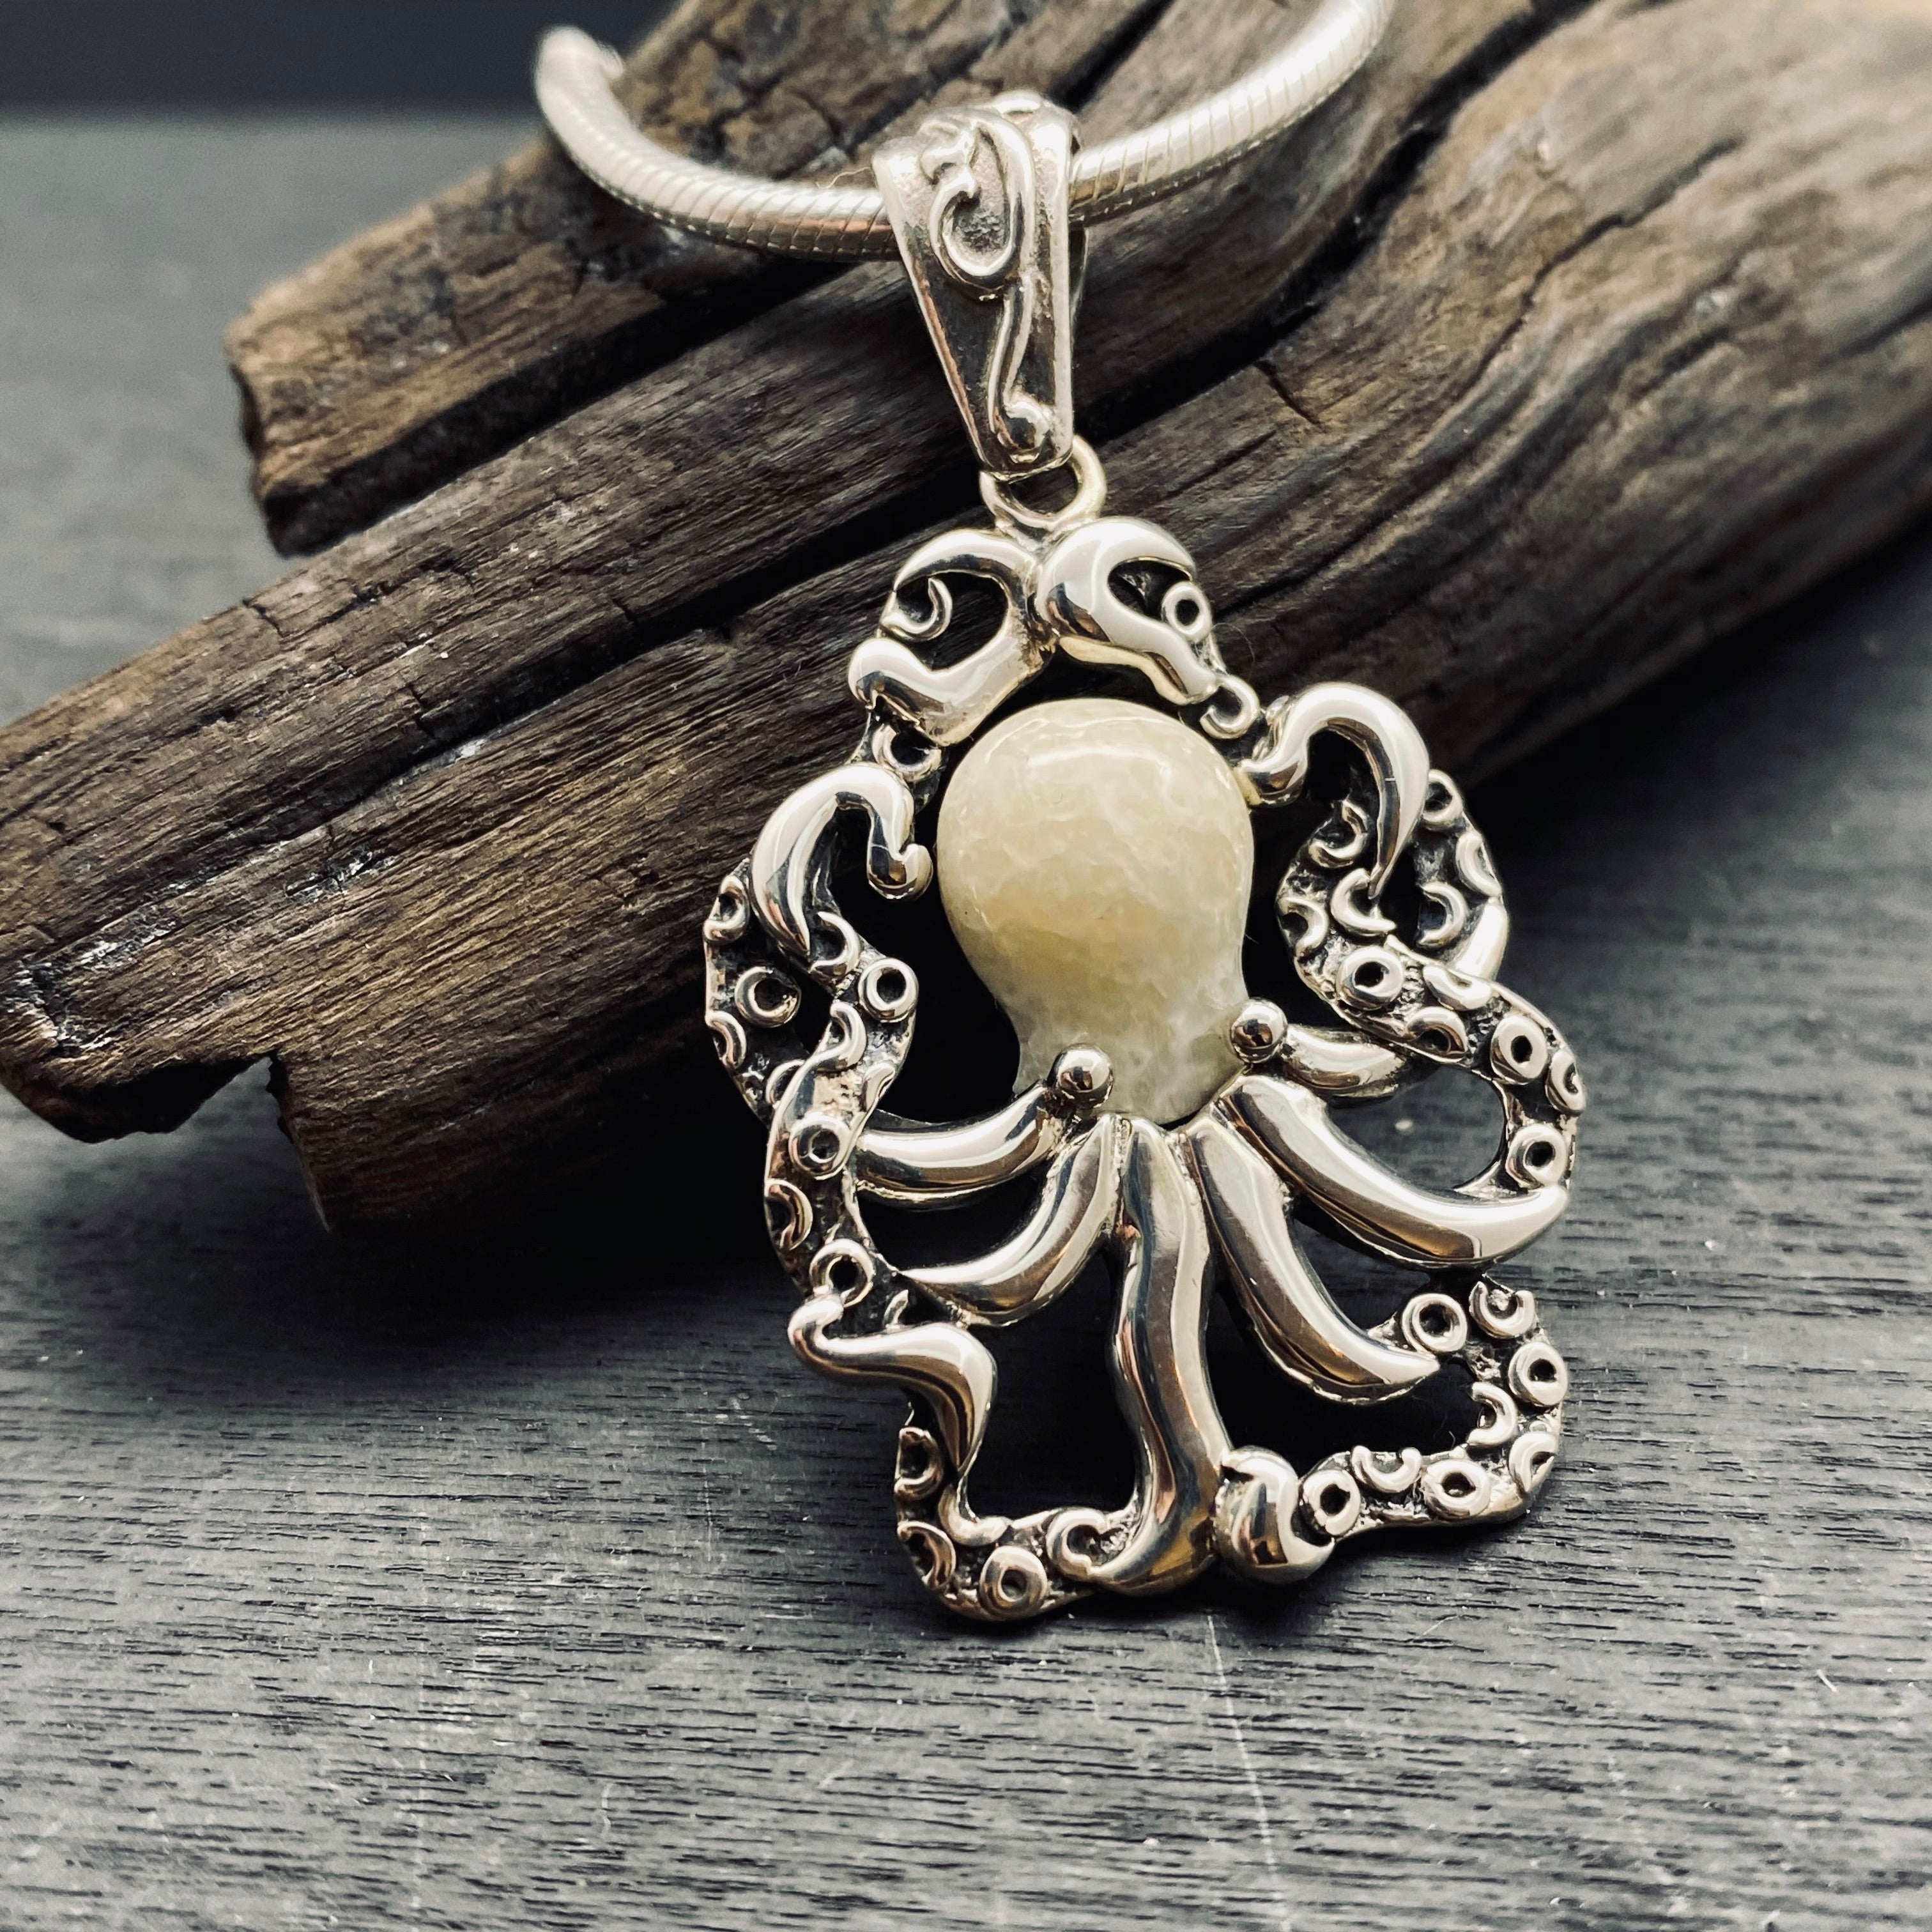 Sterling Silver Fossilized Walrus Tusk Octopus Pendant on Chain